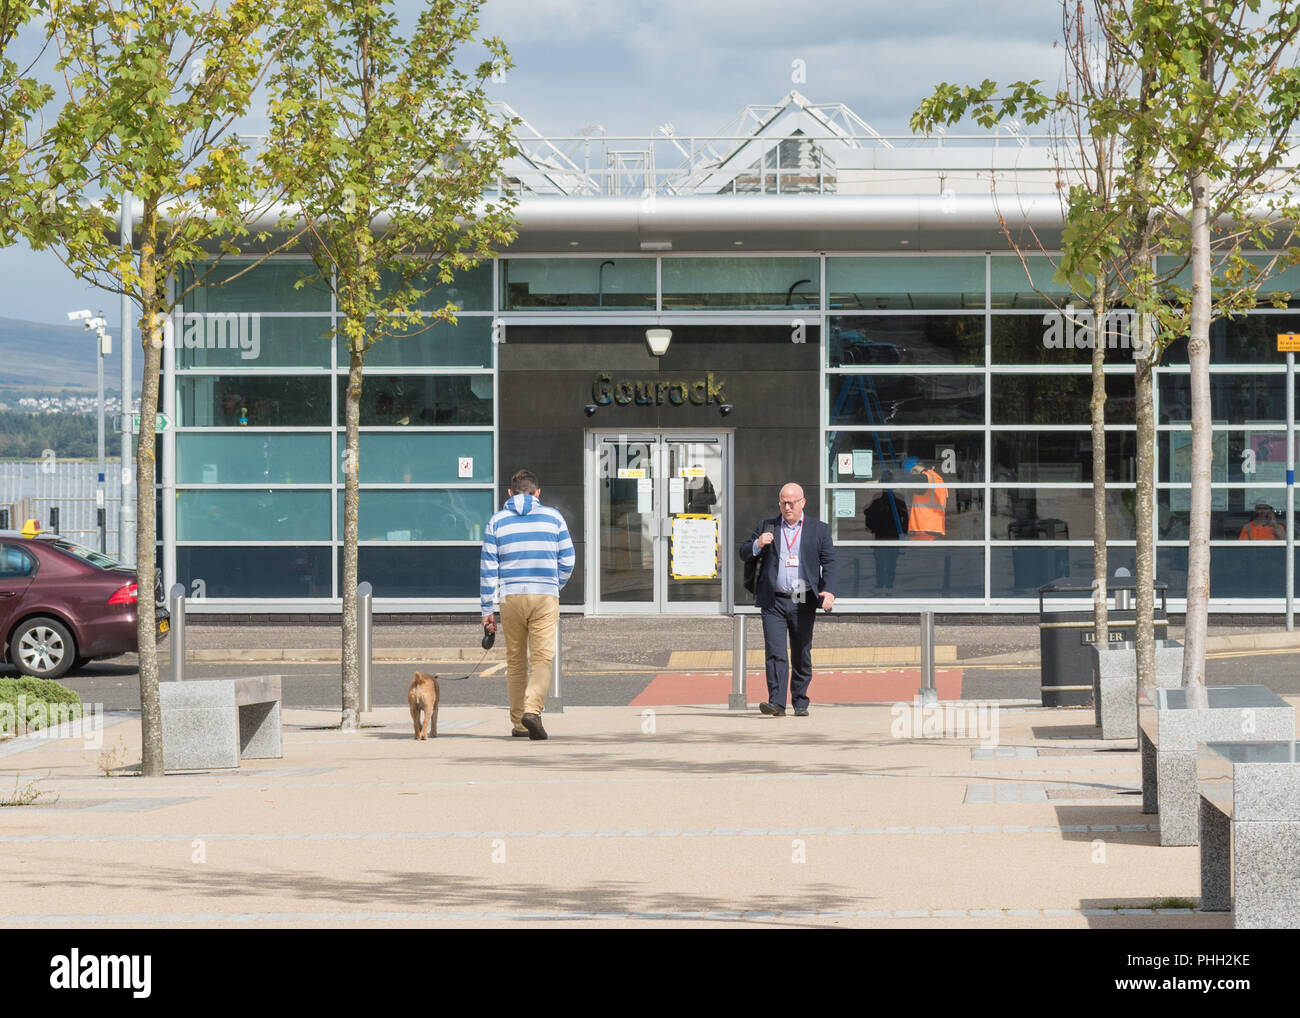 Gourock train station - a terminus station of the Inverclyde Line, Scotland, UK - Stock Image